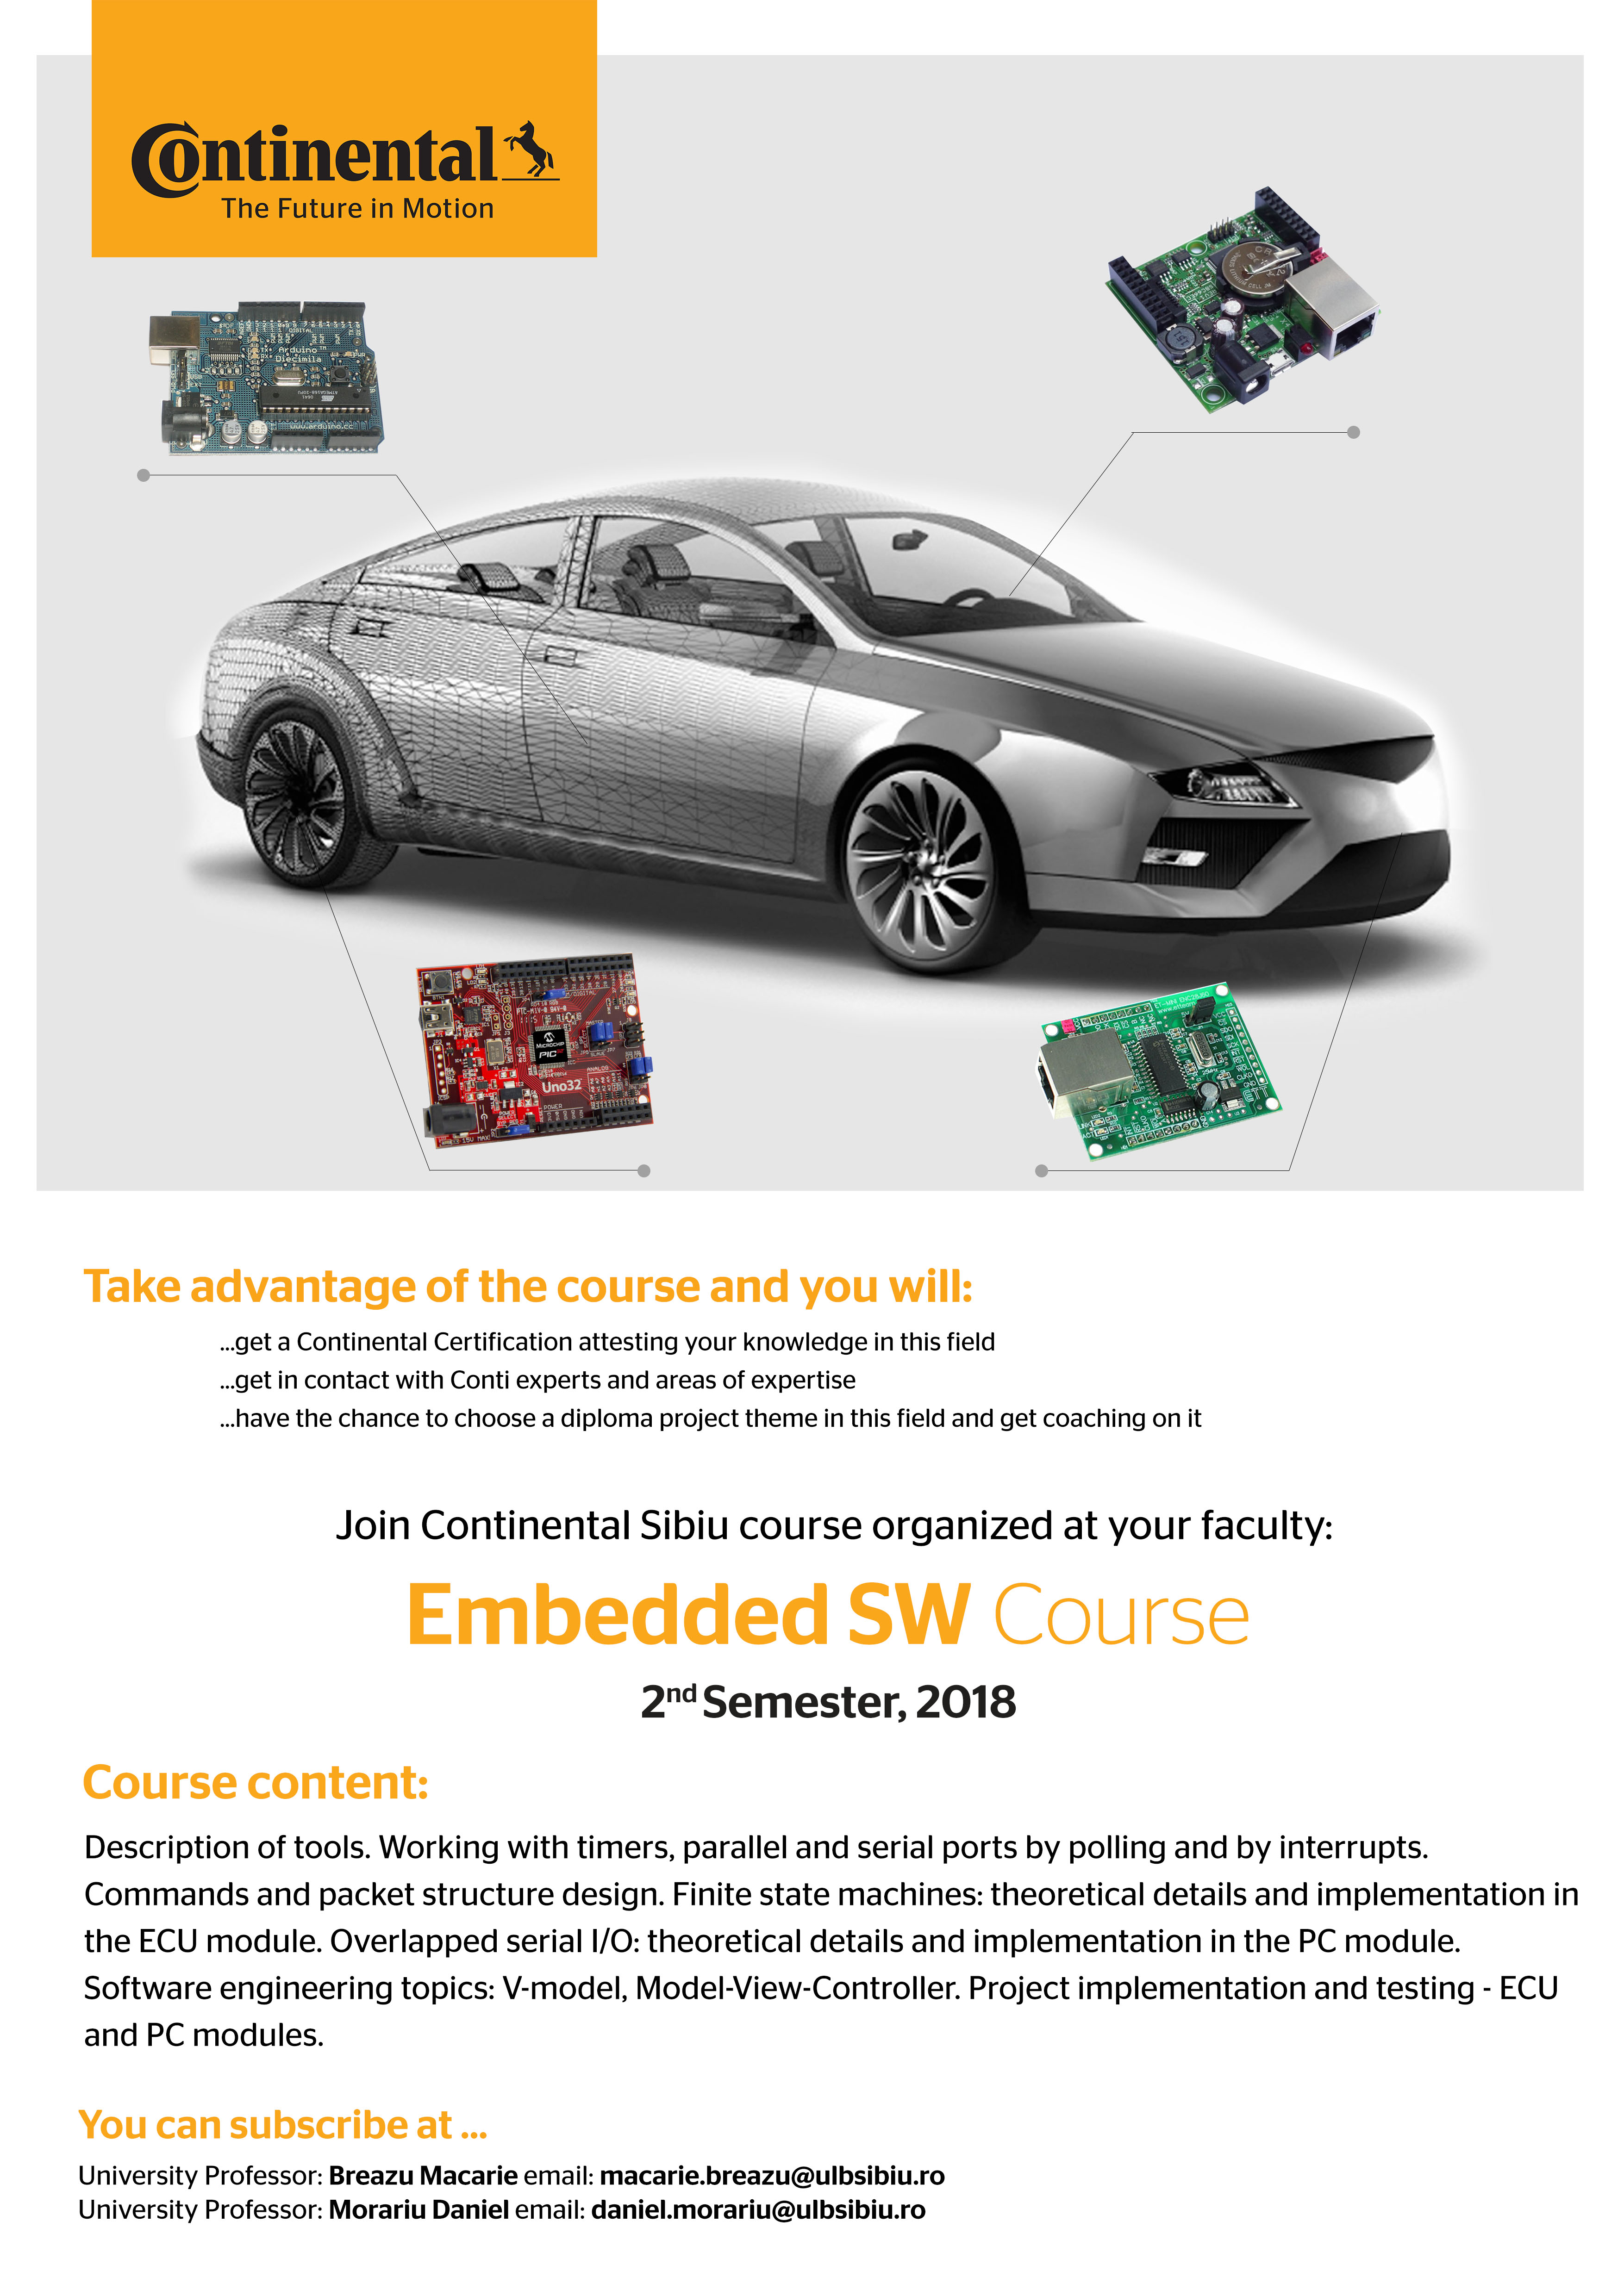 Embedded SW Course